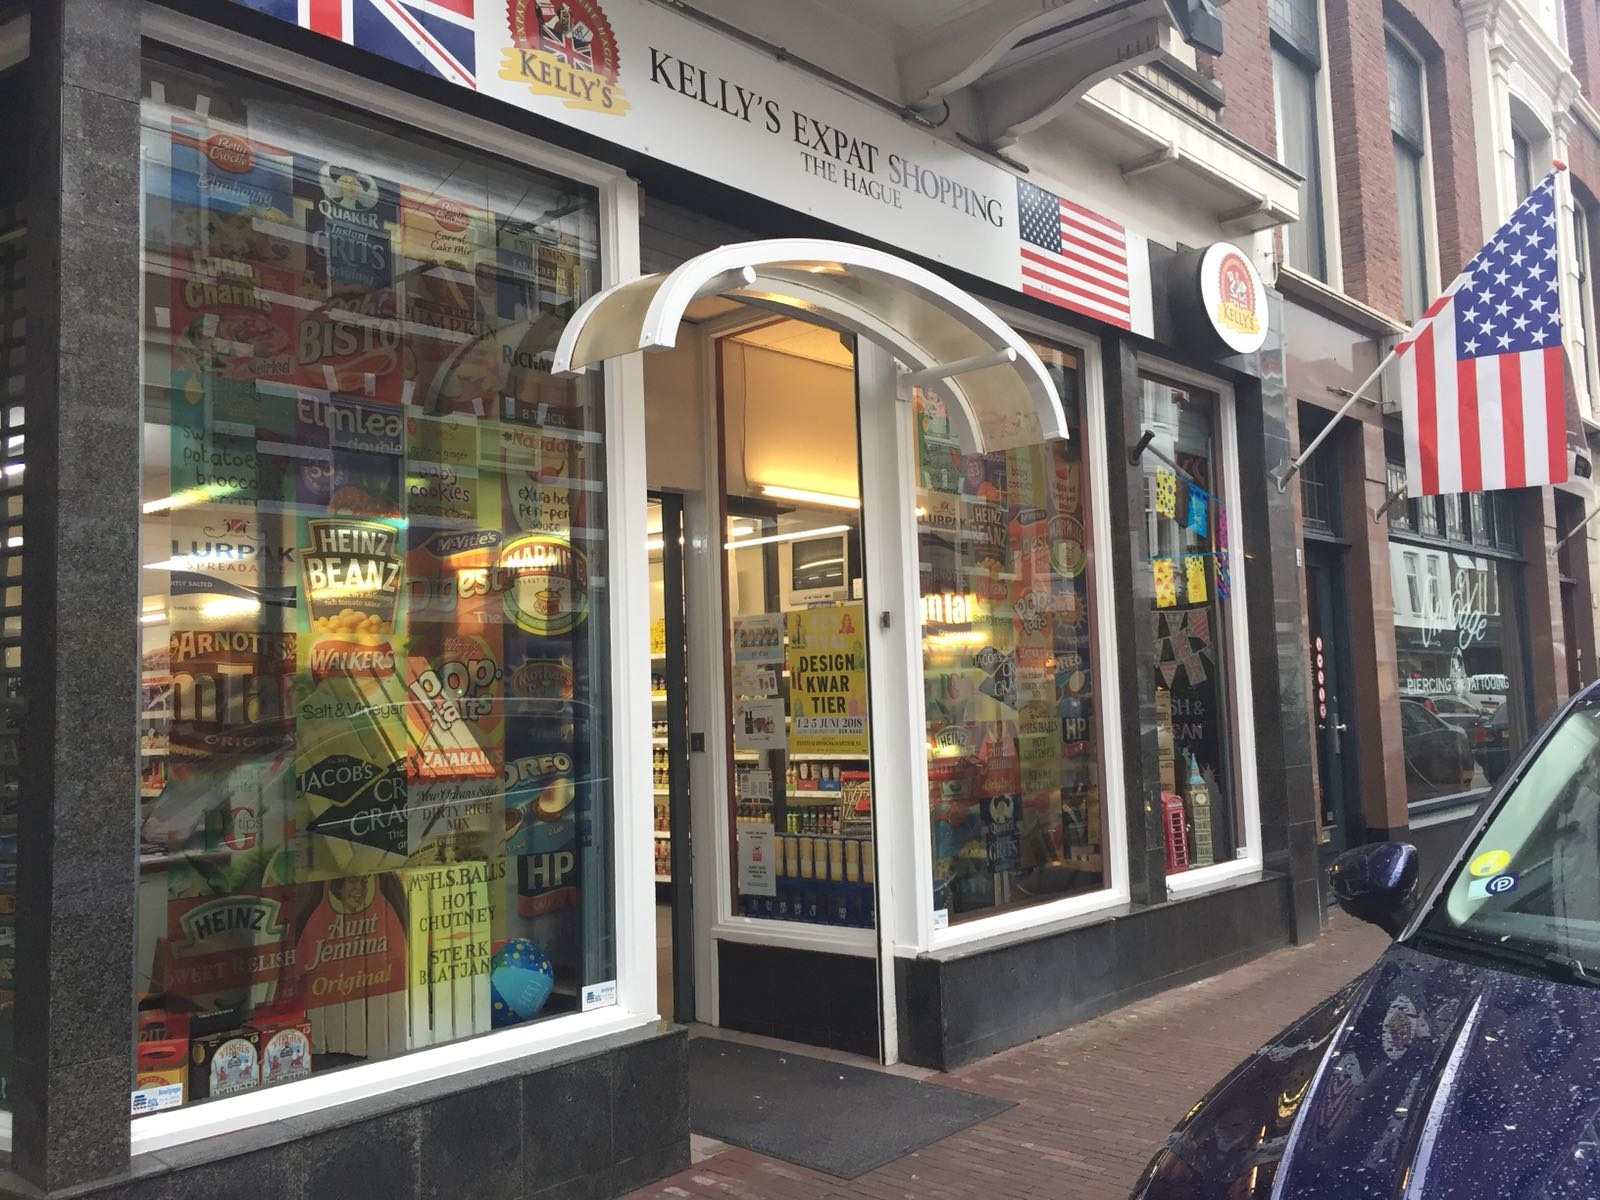 Kellys Expat Shopping The Hague